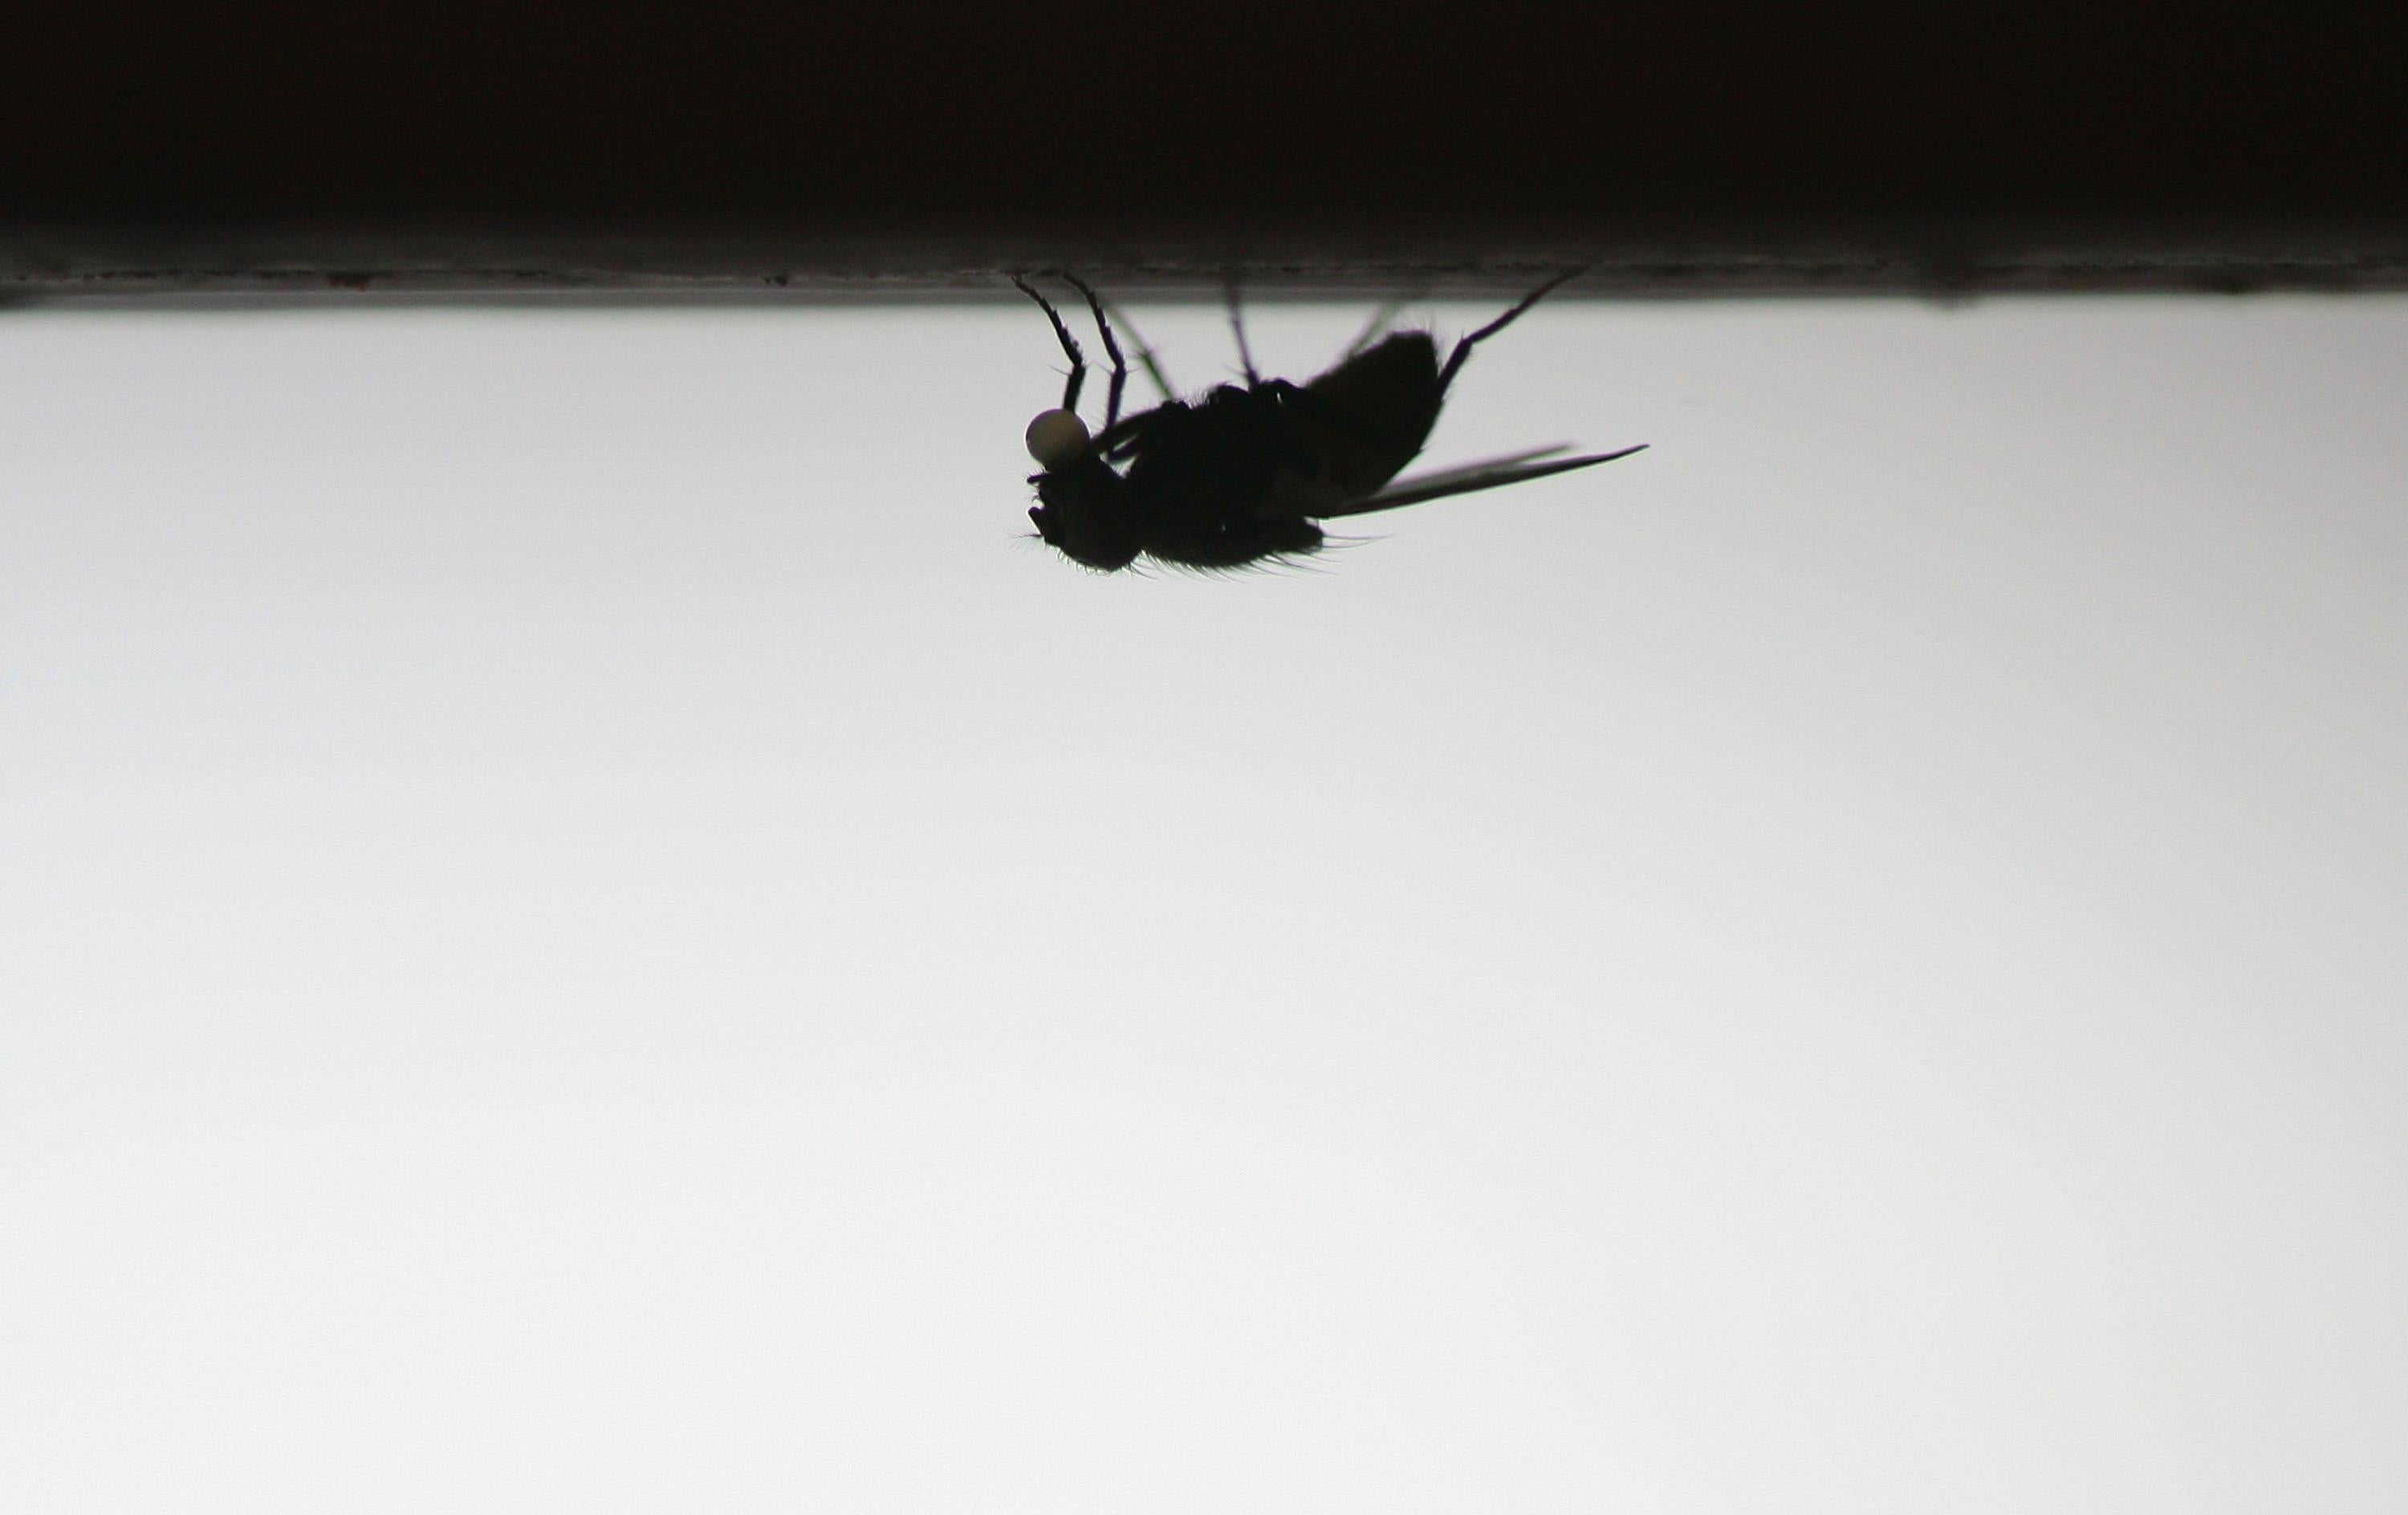 A housefly seen upside down.